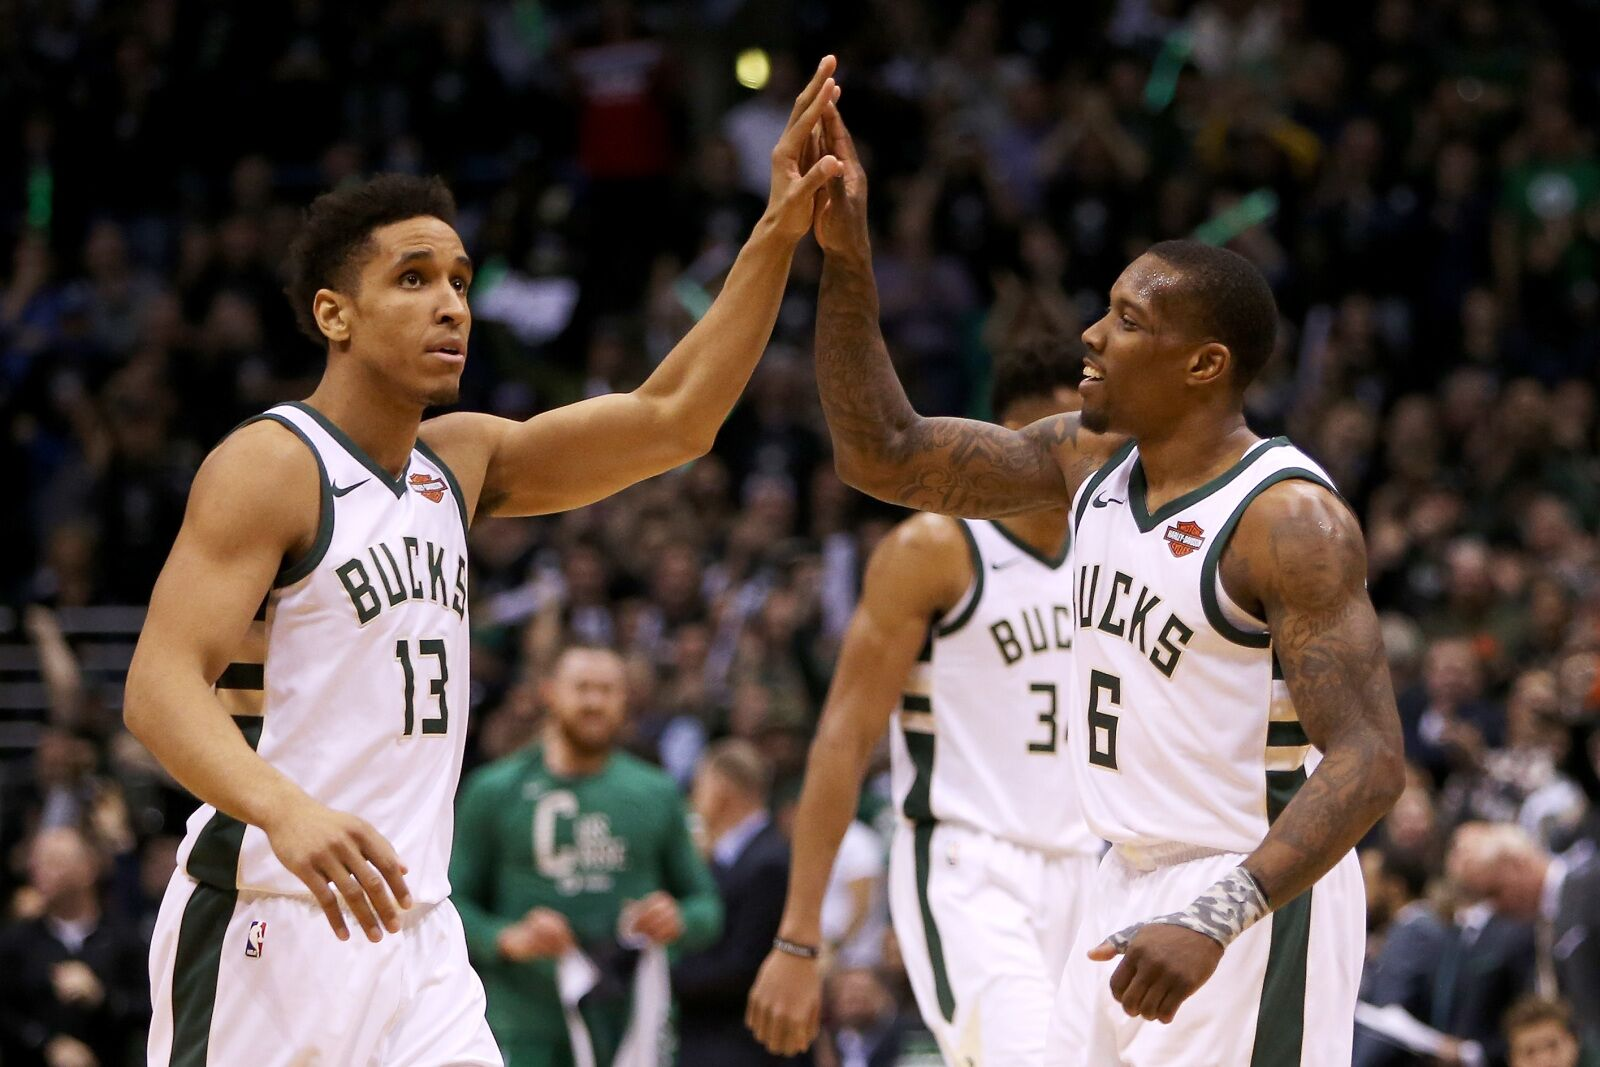 Fantasy Basketball: The Top Salary Value Plays – Go Russy or Kyrie